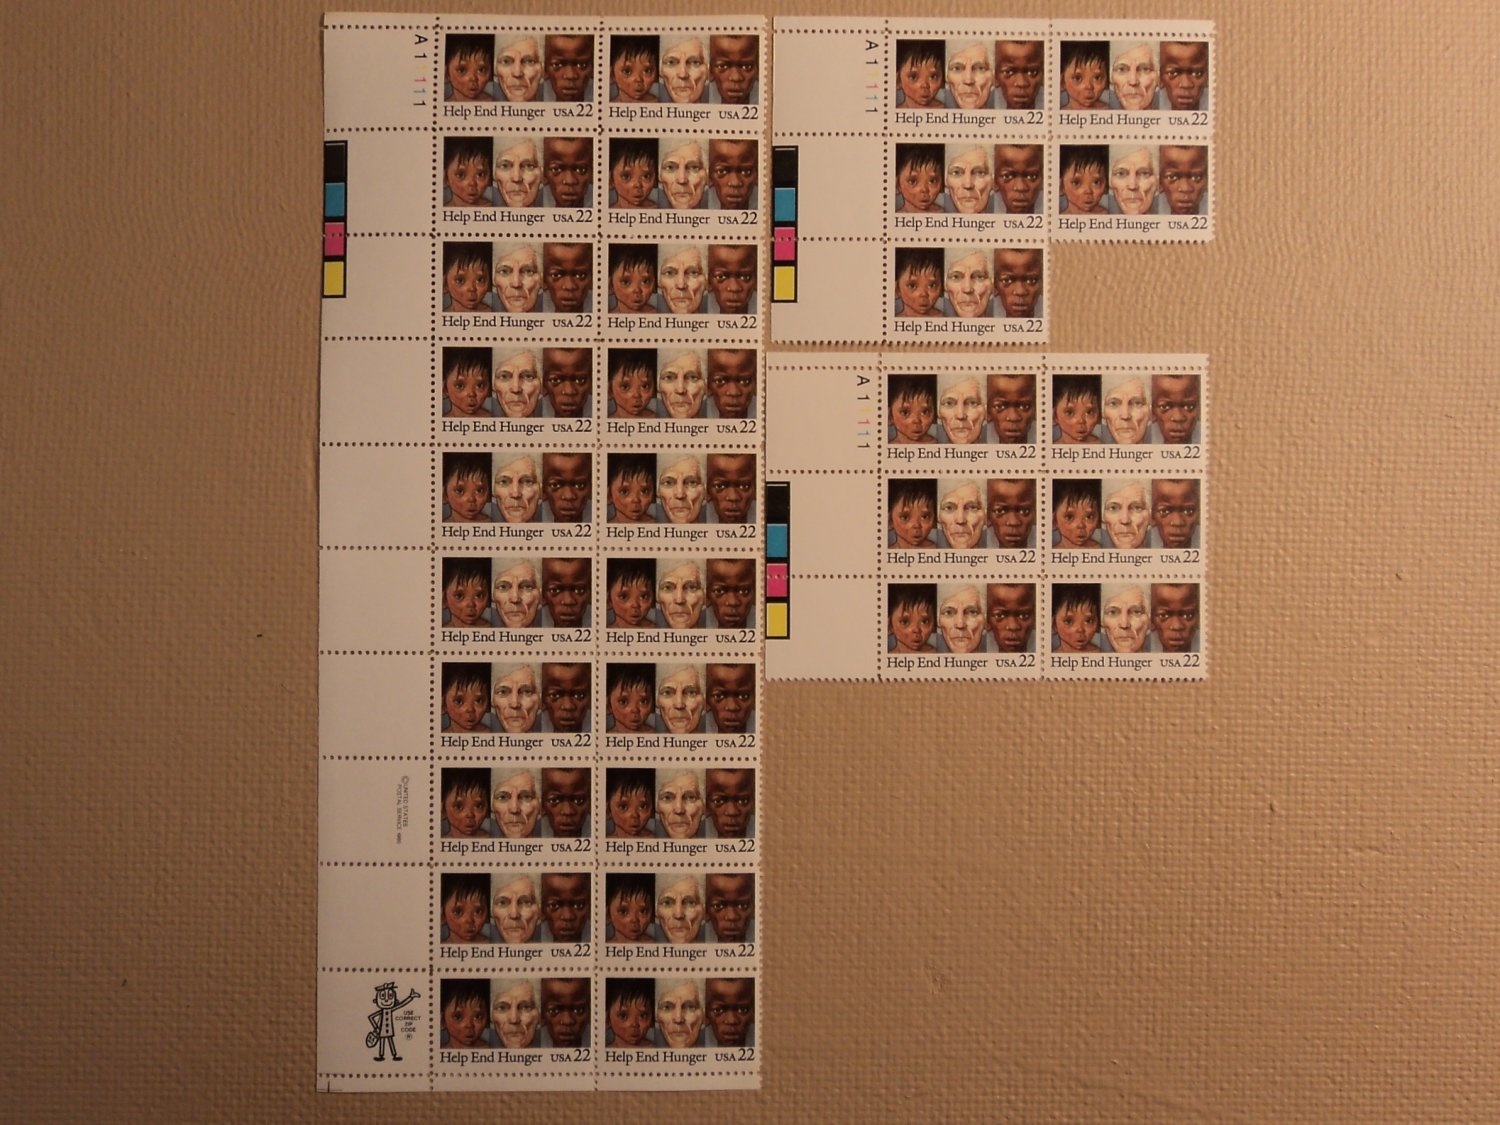 USPS Scott 2164 22c 1985 Help End Hunger Lot Of 3 Plate Block 31 Stamps Mint NH